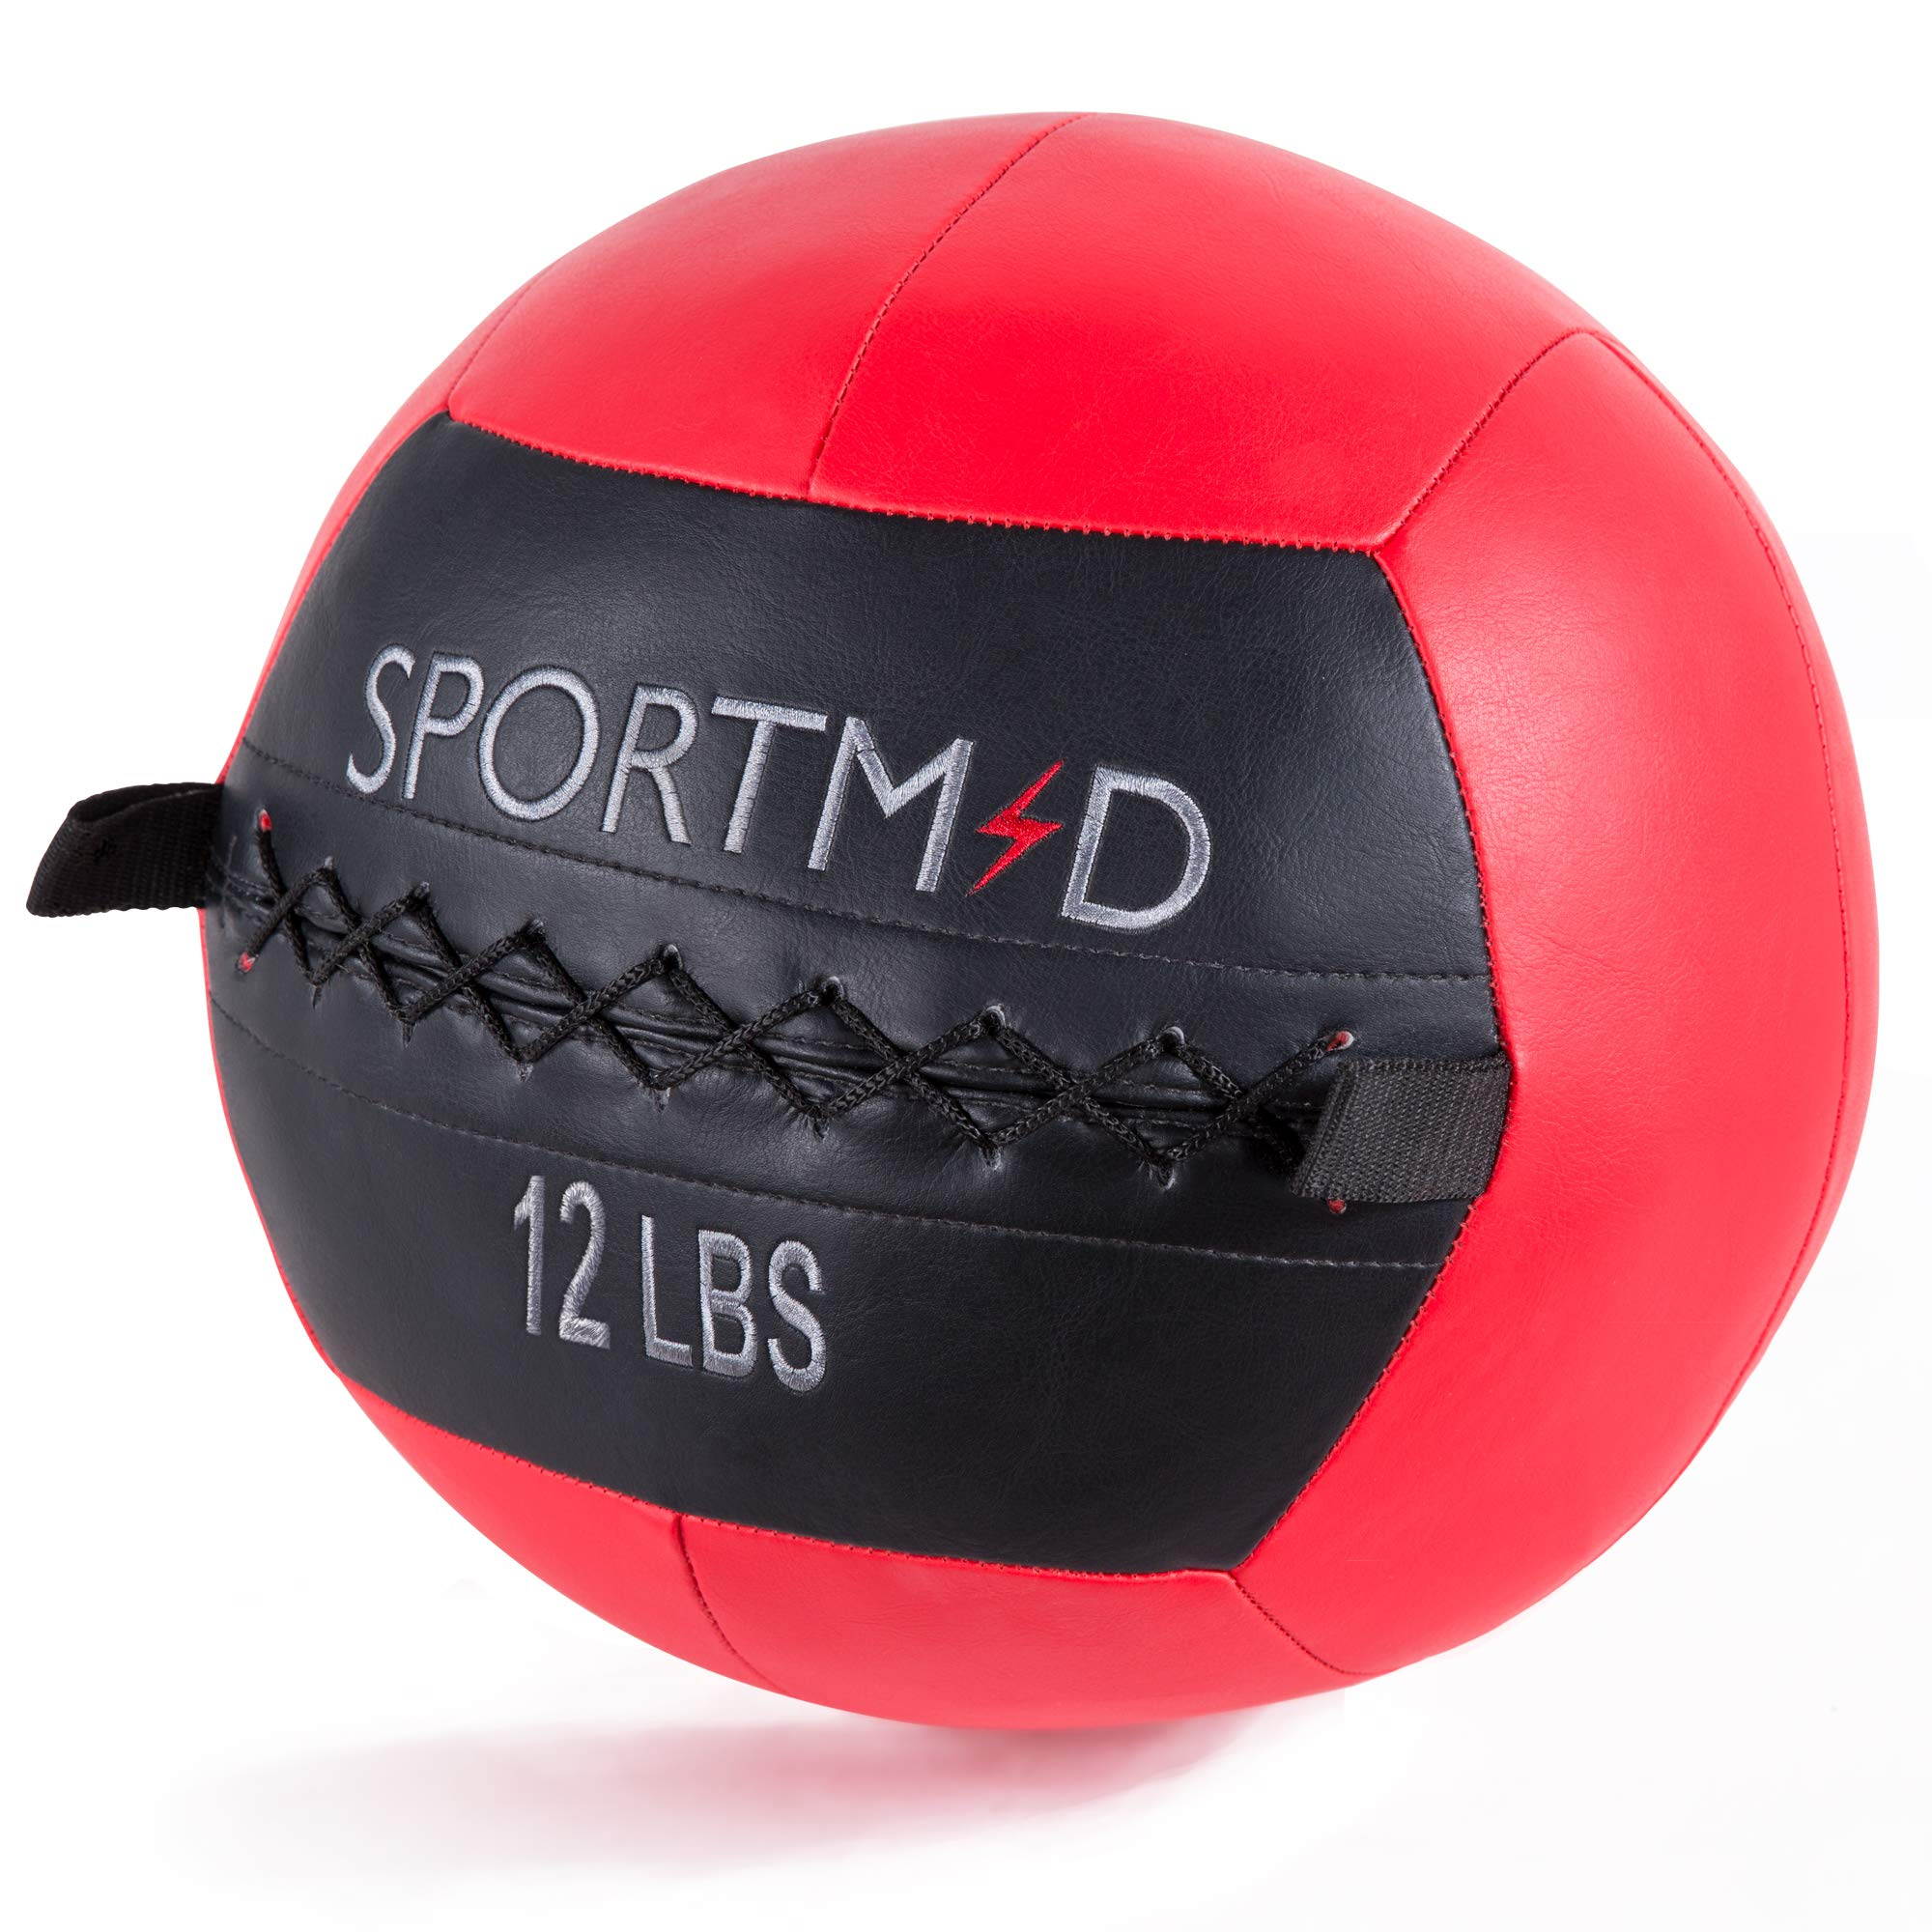 Homevibes Medicine Ball Wall Ball Soft Weighted Ball Exercise Ball Strength Training Exercises Crossfit Cardio Workouts Muscle Building Balance, 12LBS, Red&Black